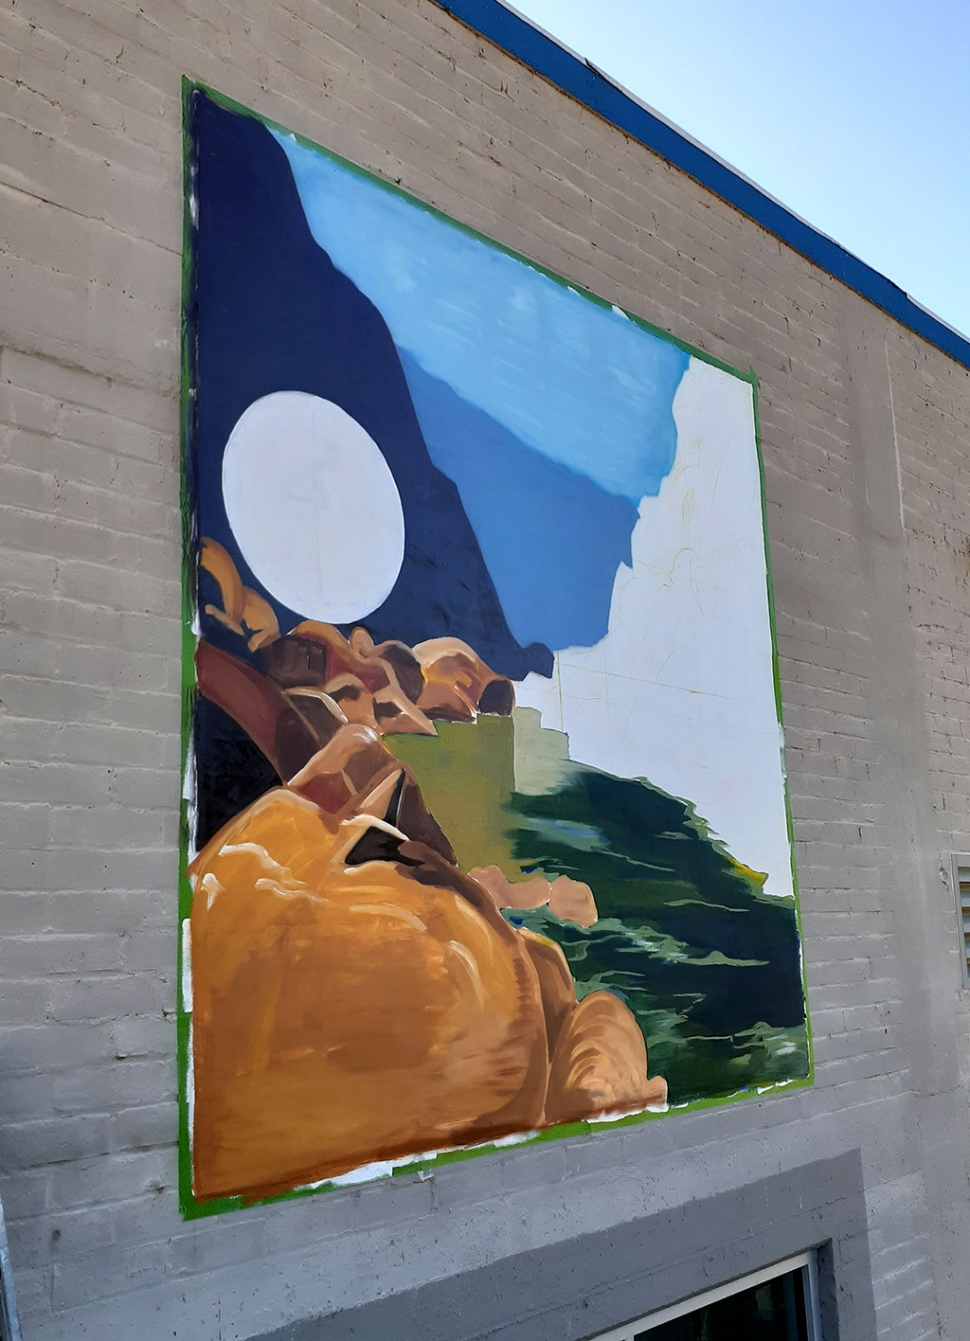 Pictured above is a mural in progress just outside Nova Storage at 455 A Street. Fillmore artist, musician and activist Gabriel Cardenas is the one responsible for this beautiful artwork.